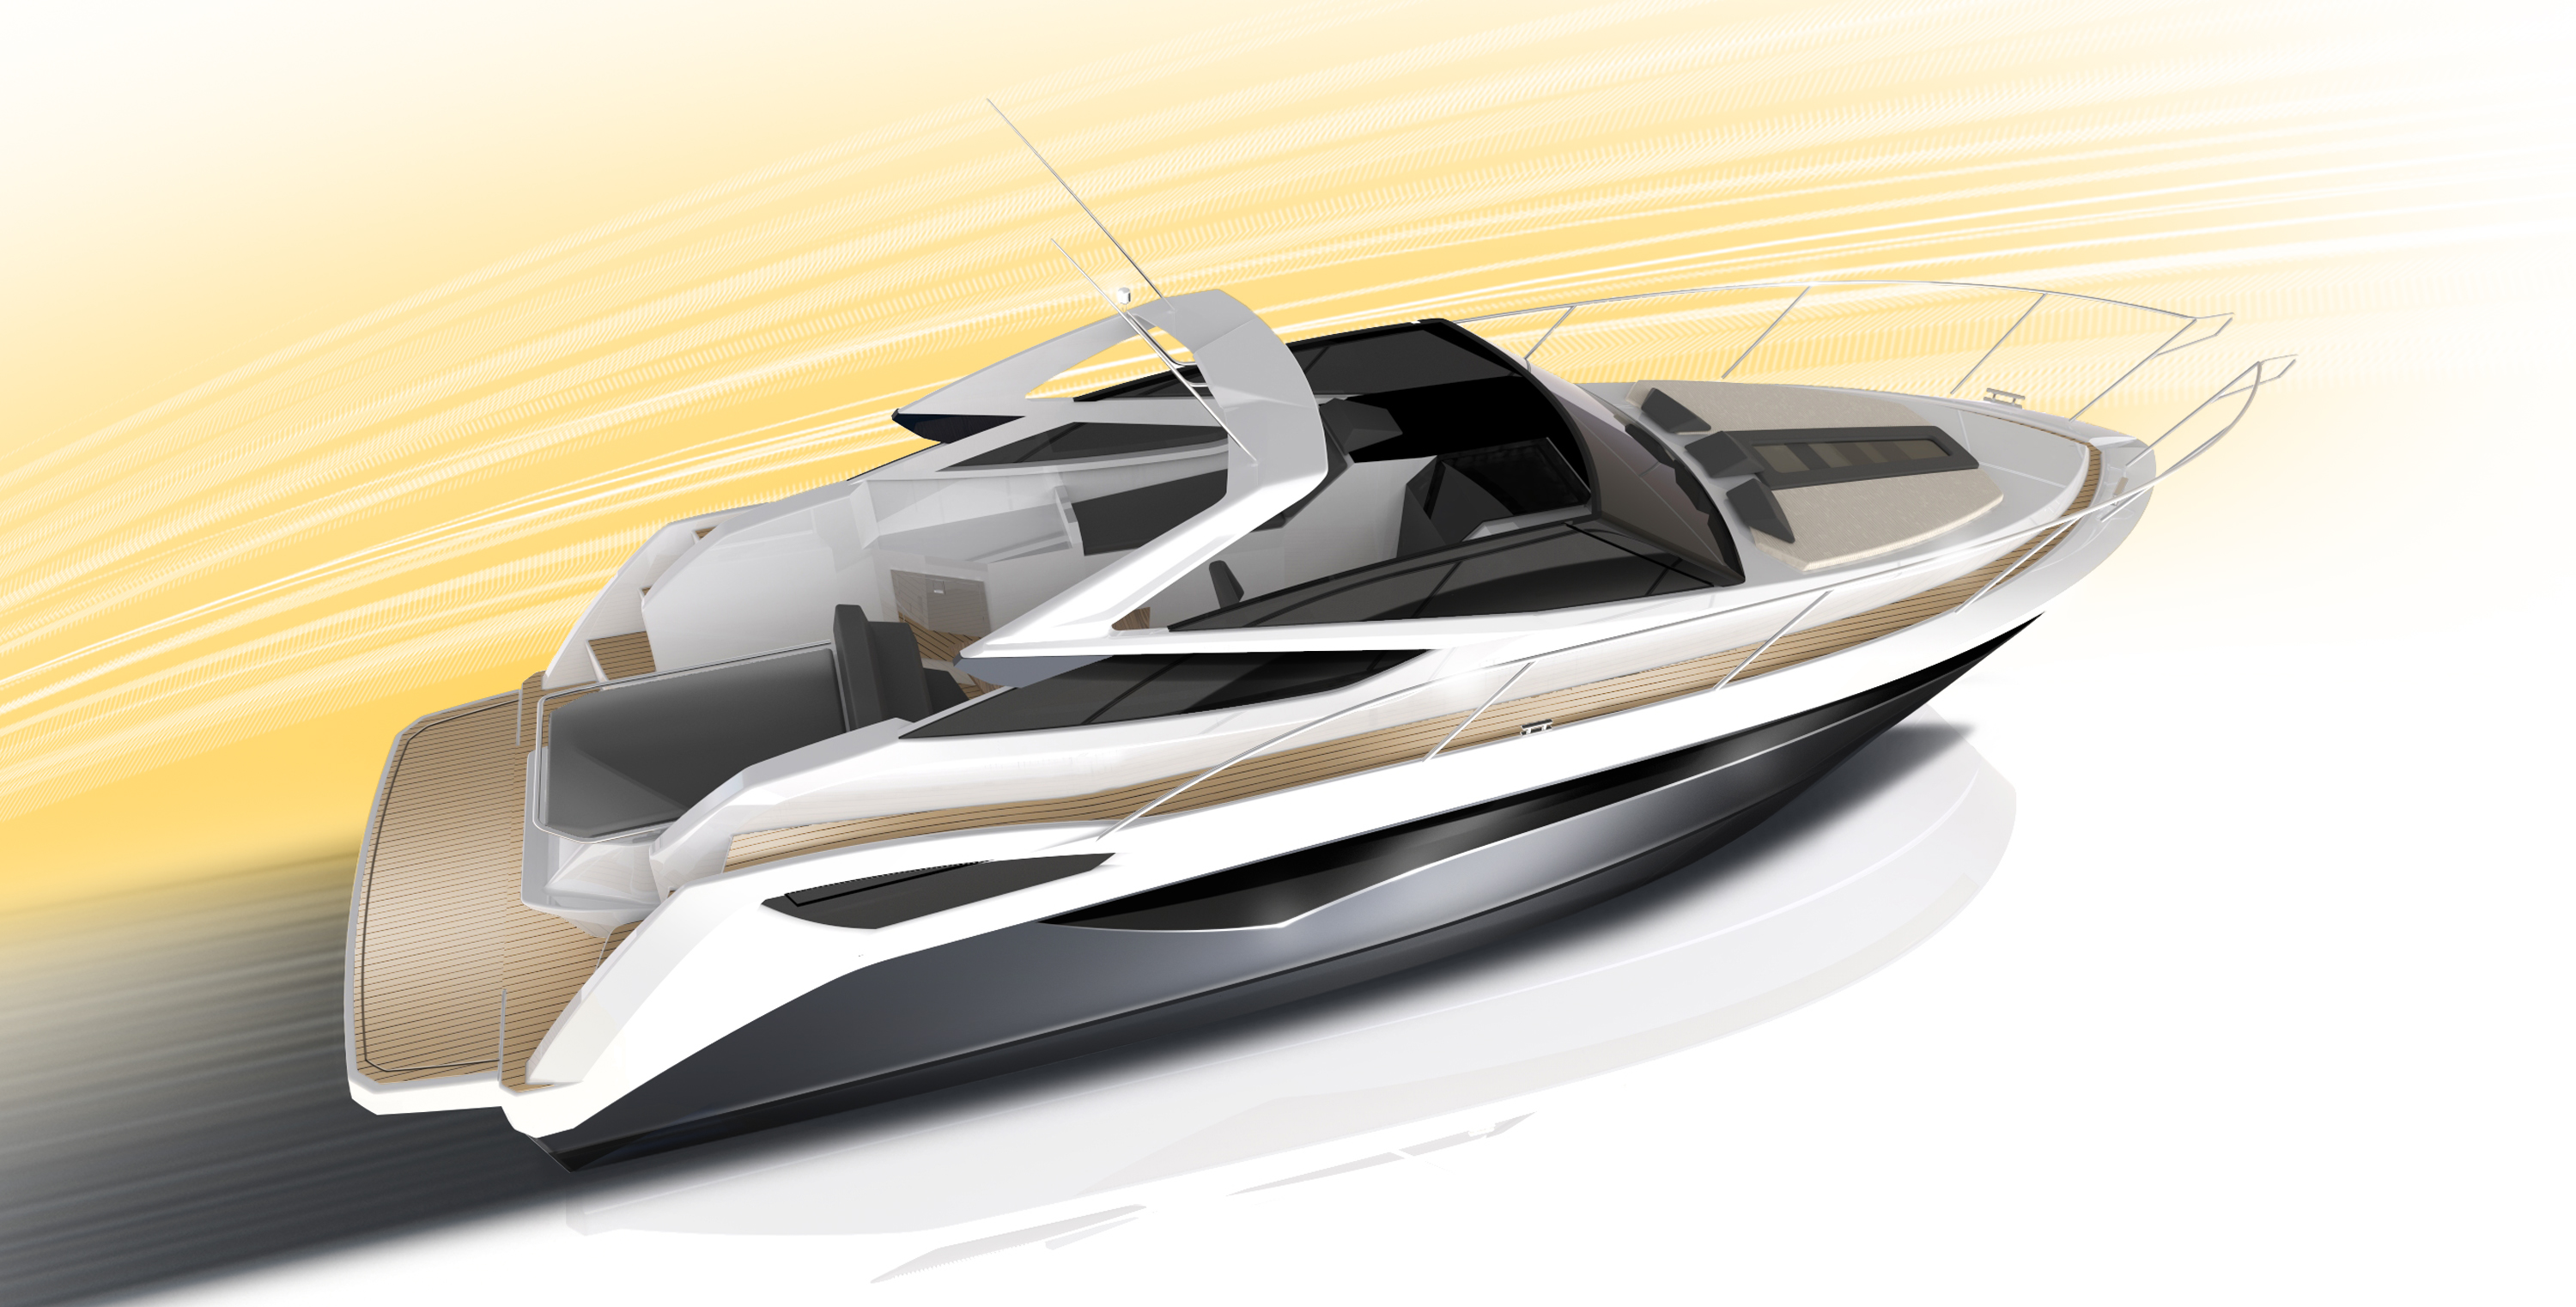 Galeon 305 Open sketch